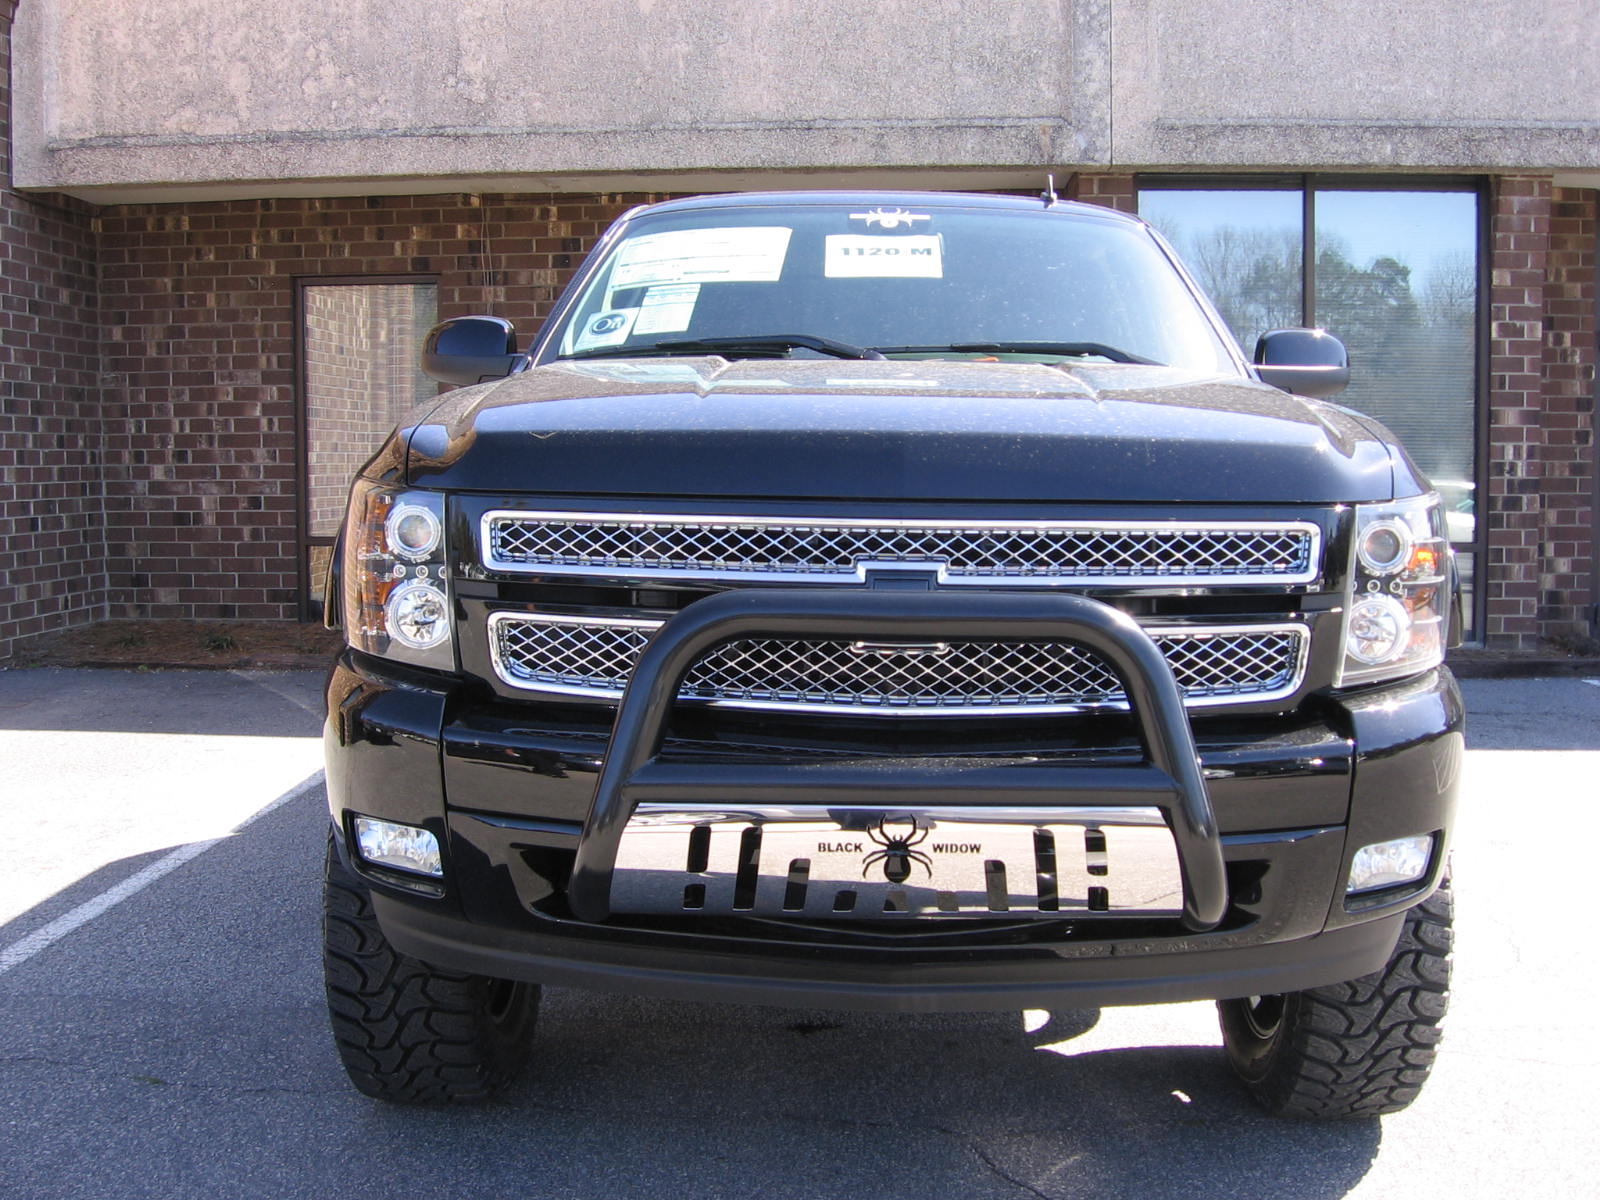 2012 Black Widow Truck http://vannyorkgm.blogspot.com/2012/03/check-out-this-all-new-2012-chevy.html